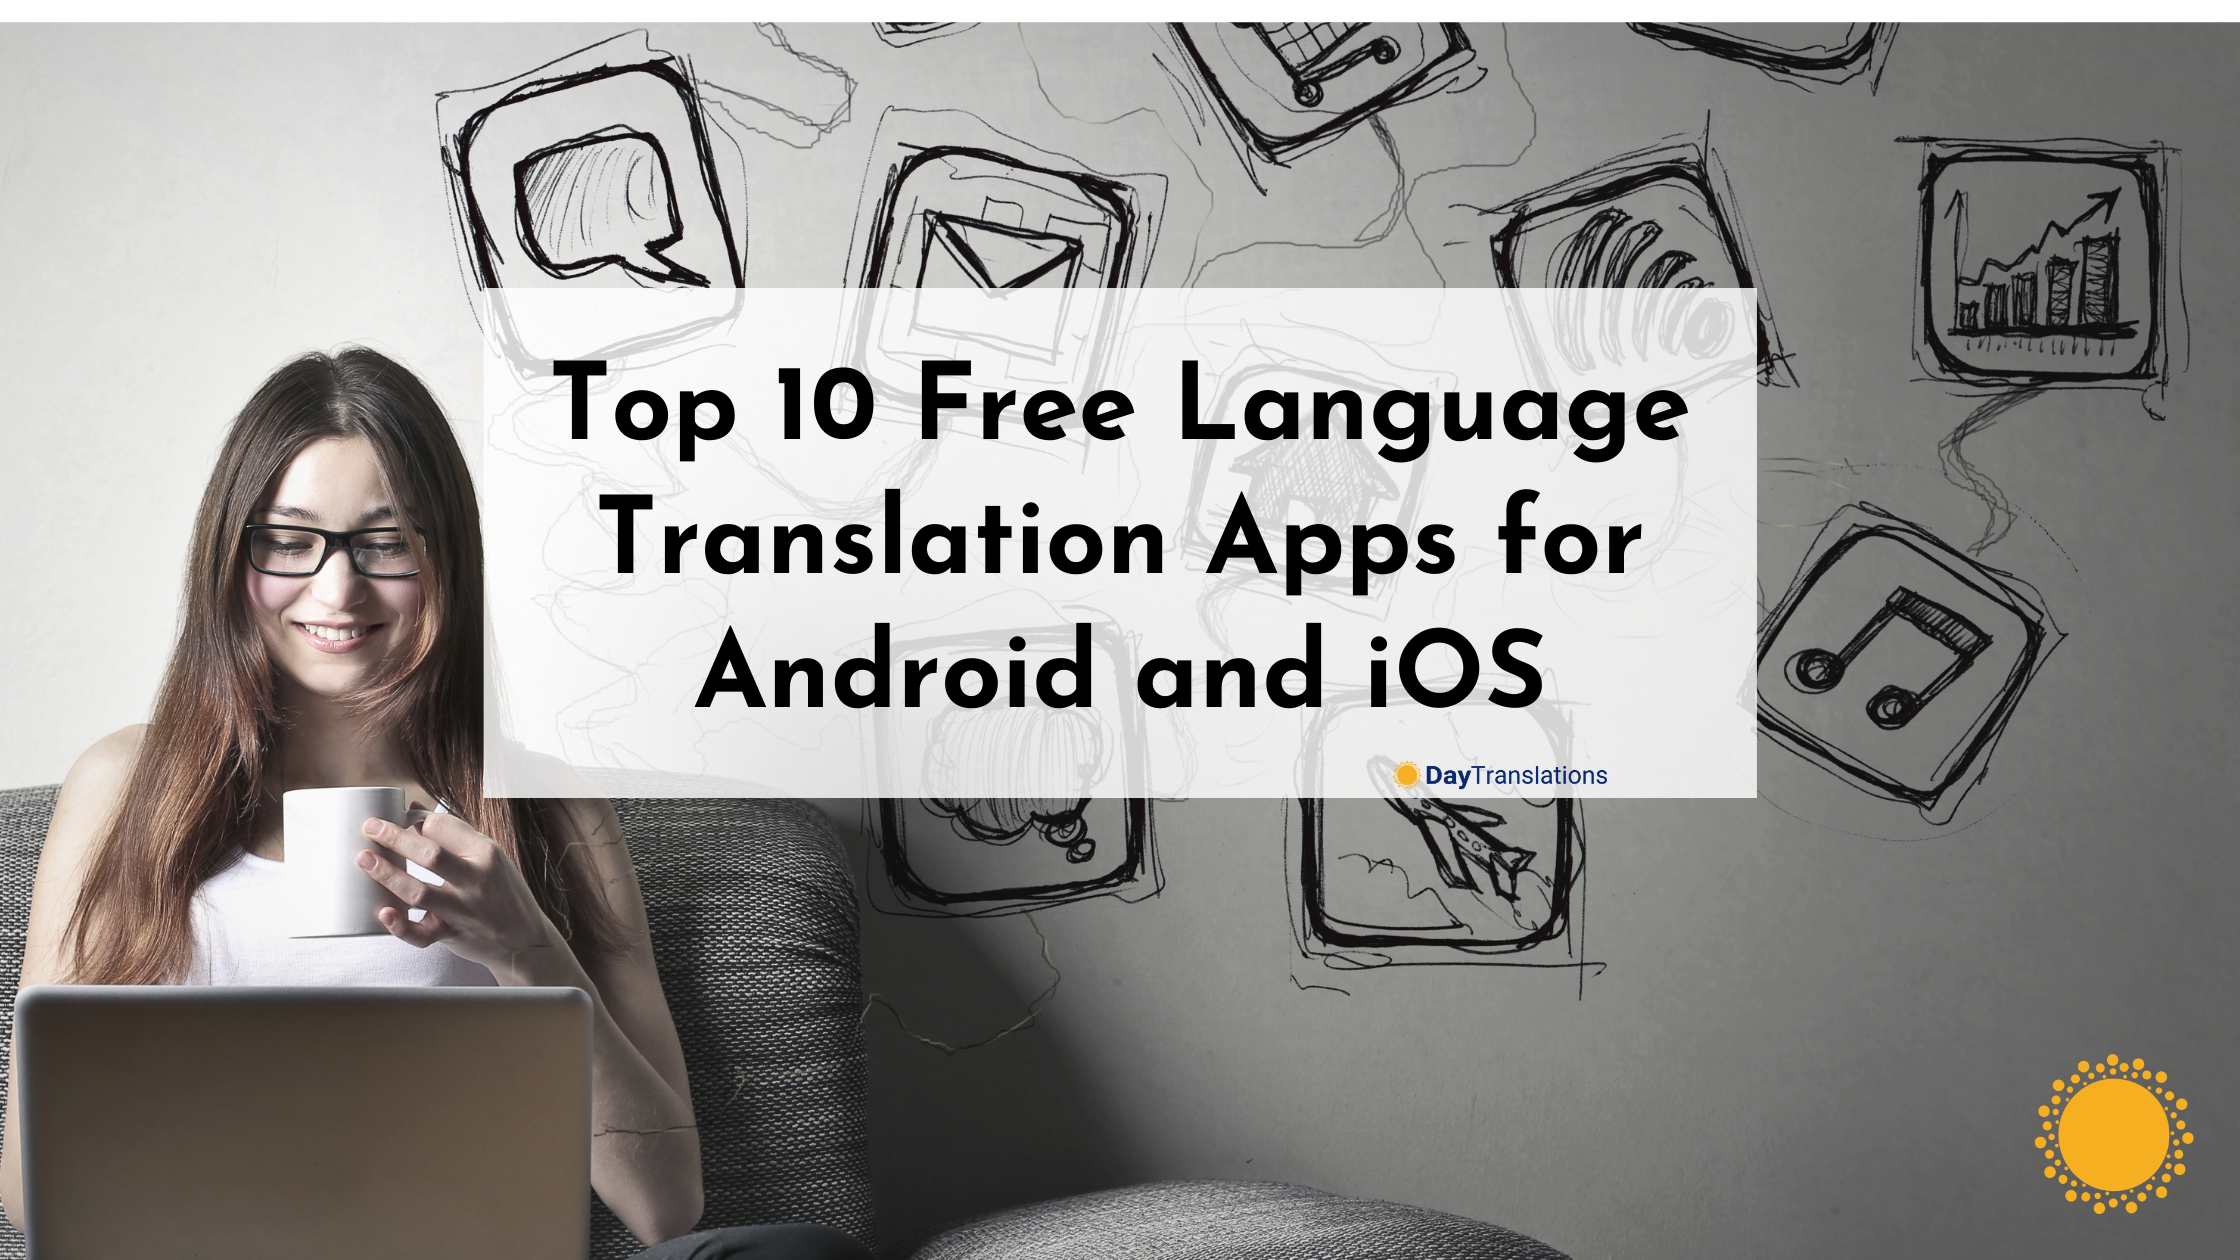 Top 10 Free Language Translation Apps for Android and iOS